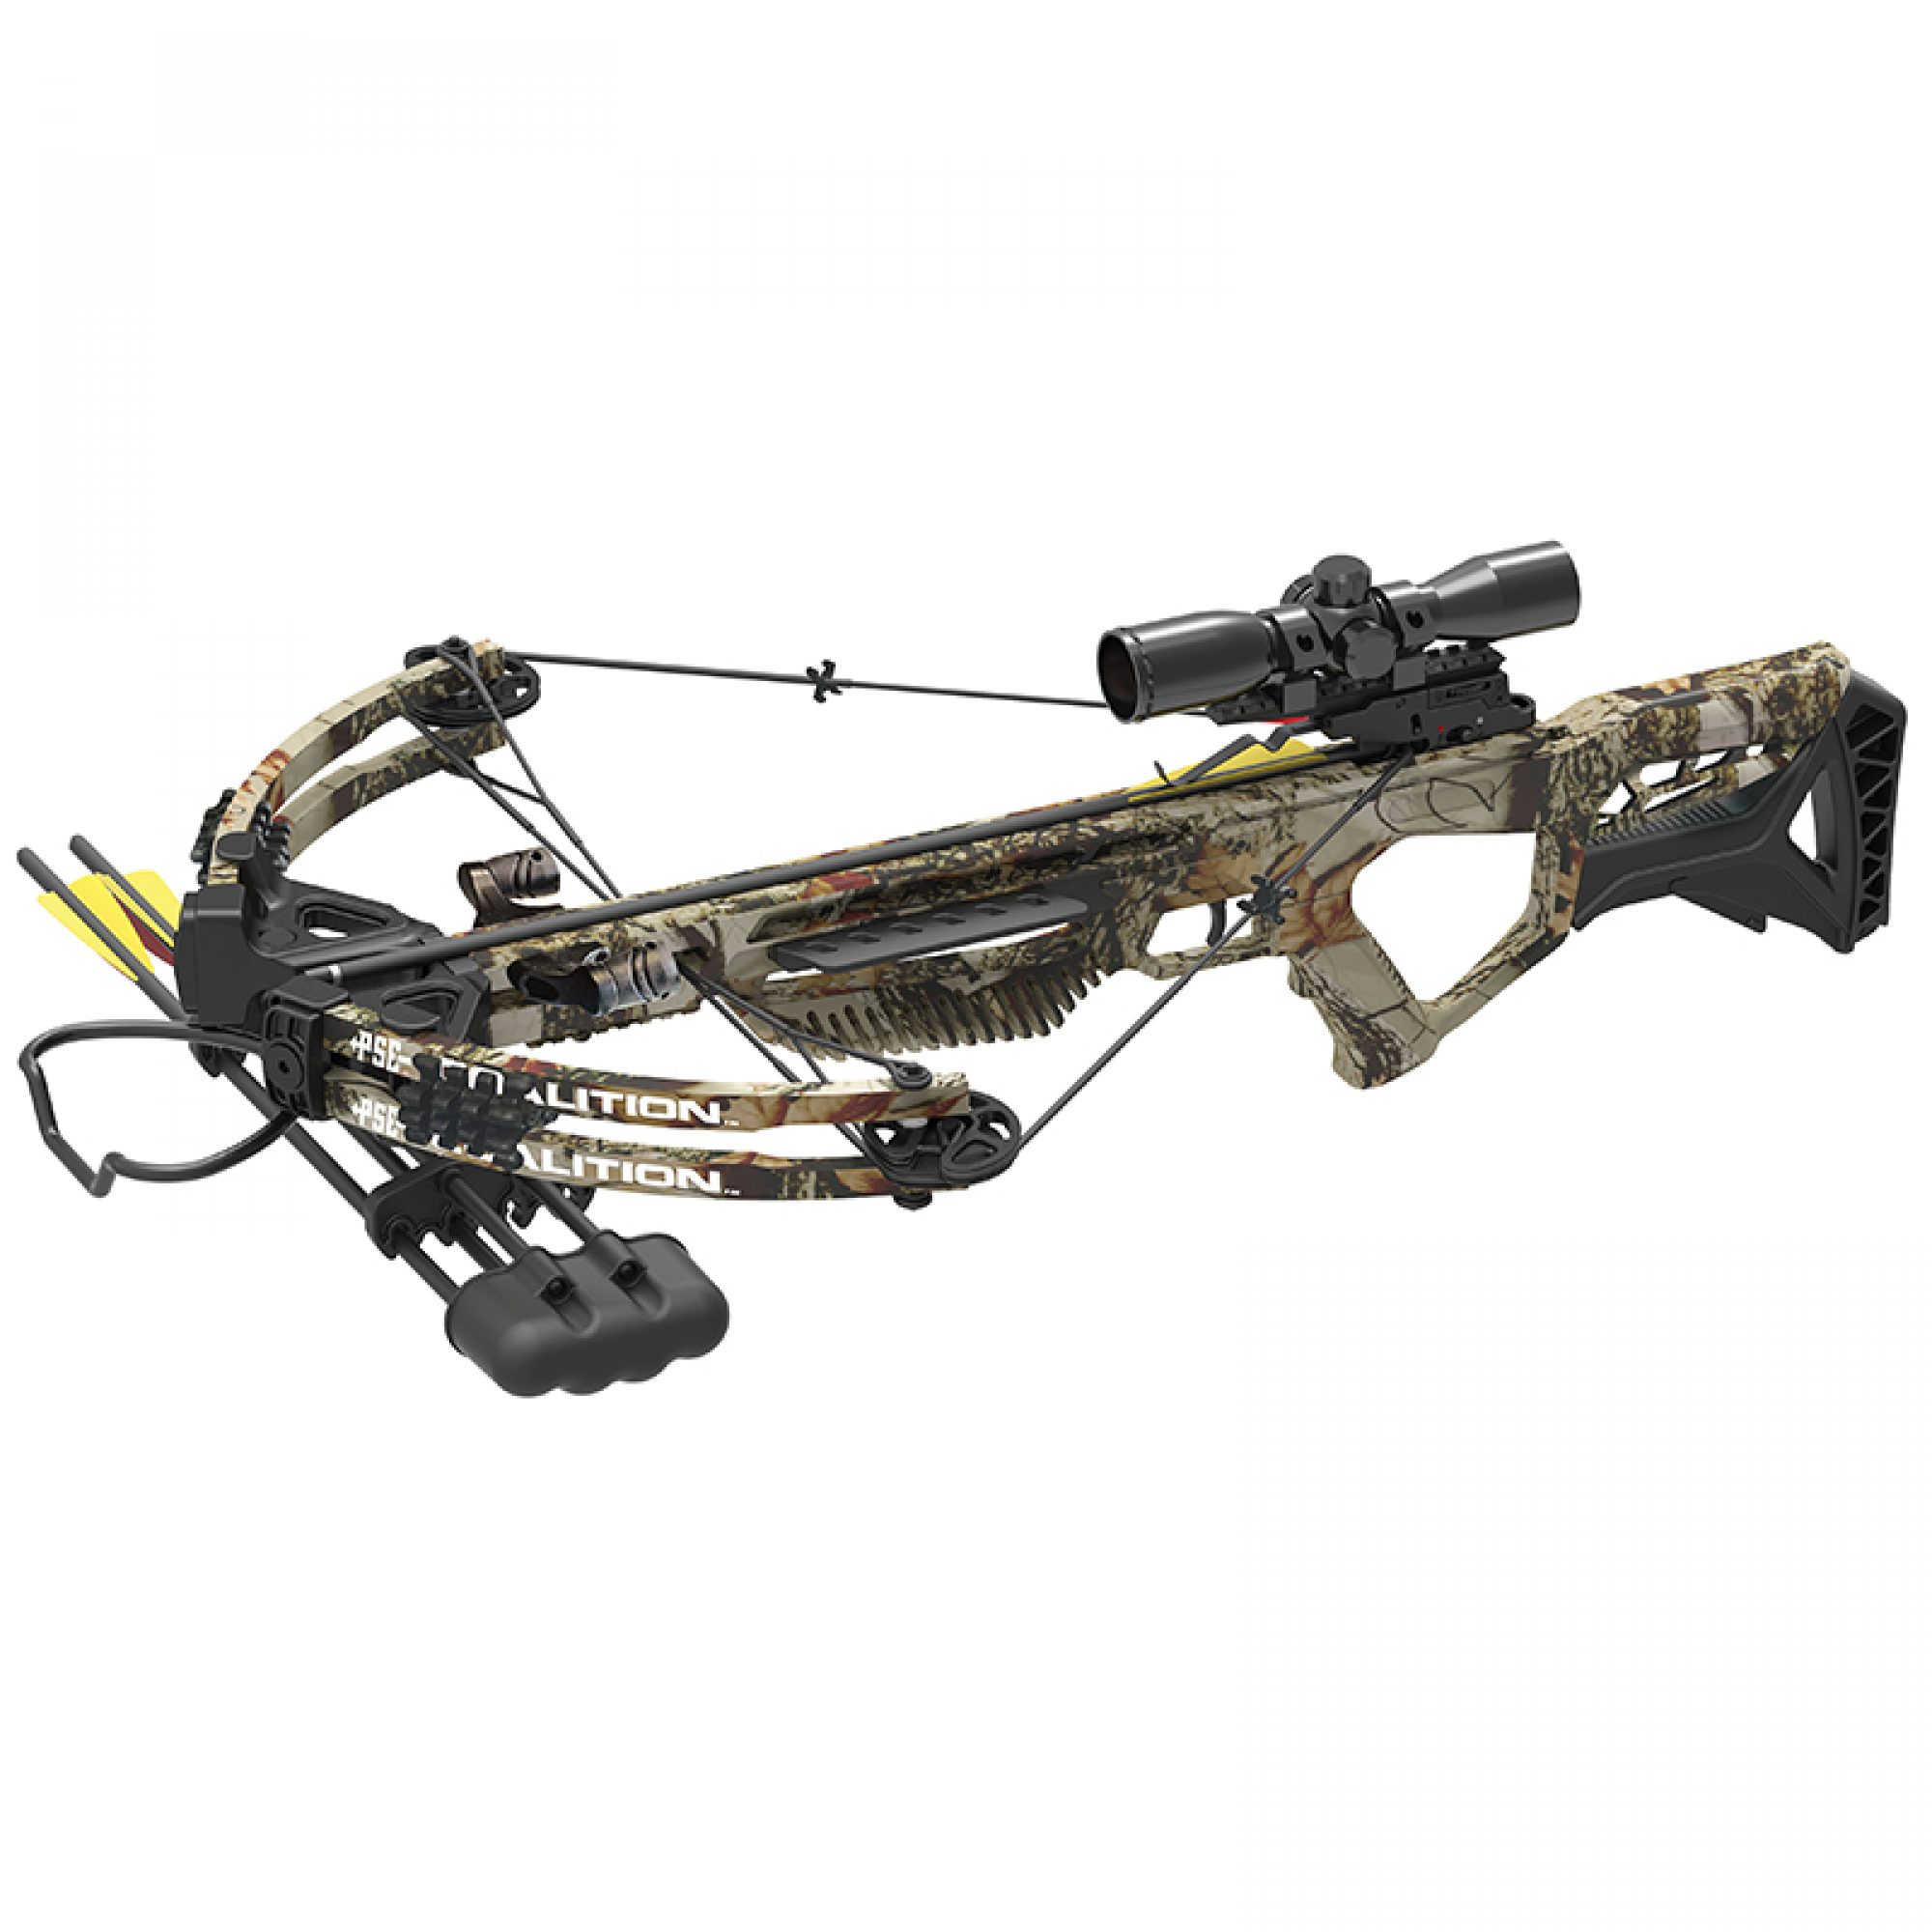 Coalition® Crossbow